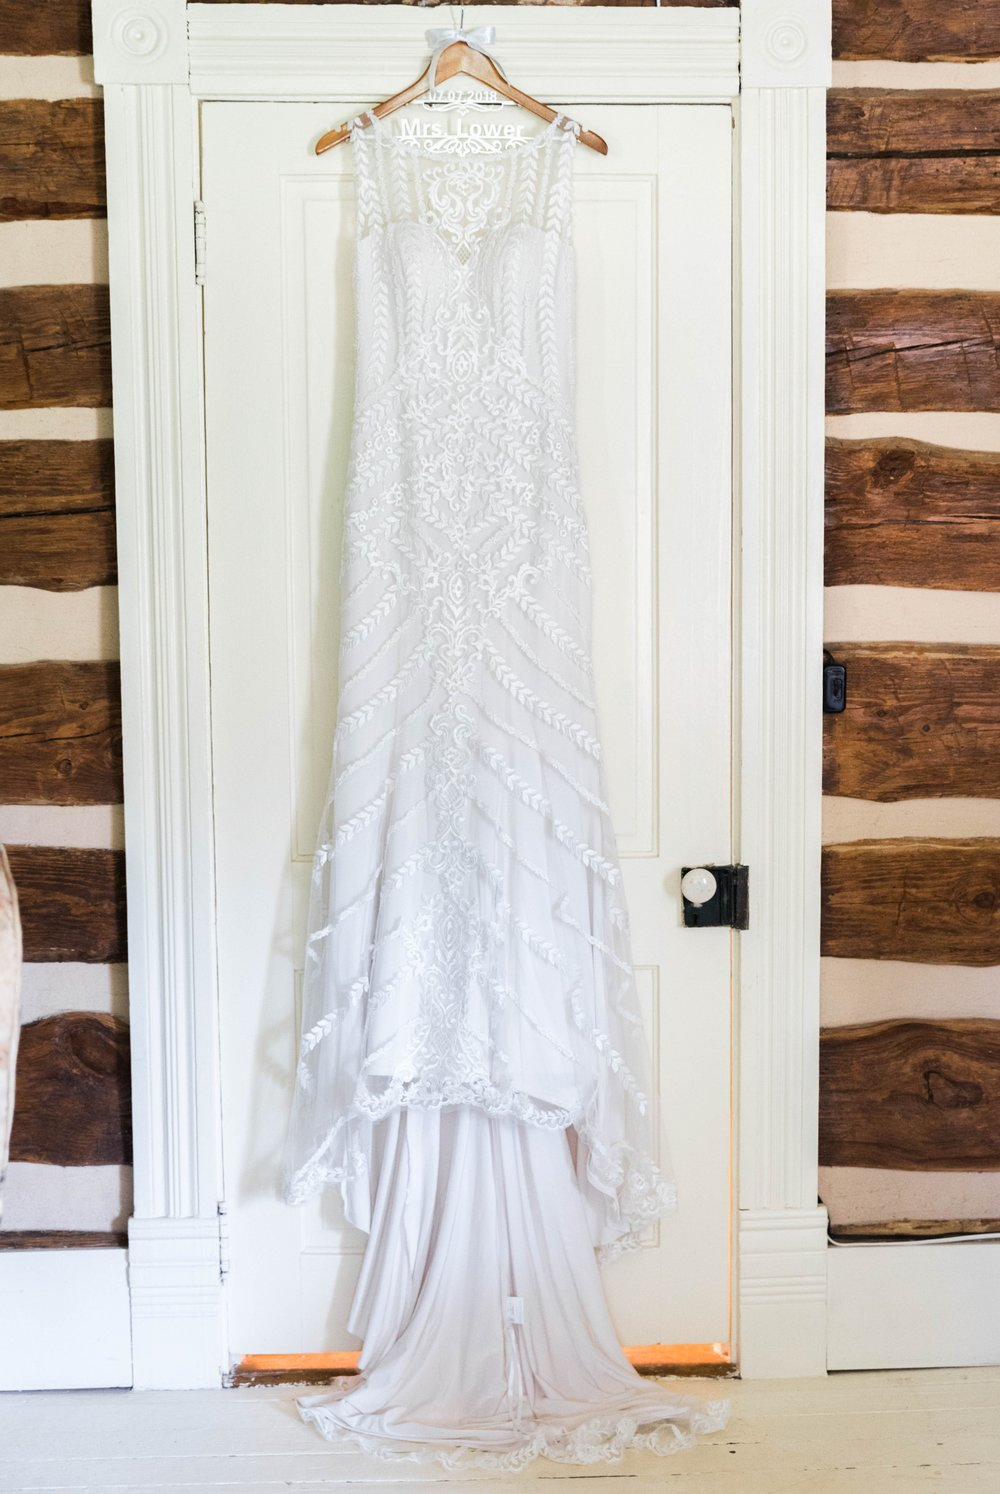 SorellaFarms_VirginiaWeddingPhotographer_BarnWedding_Lynchburgweddingphotographer_DanielleTyler 7.jpg